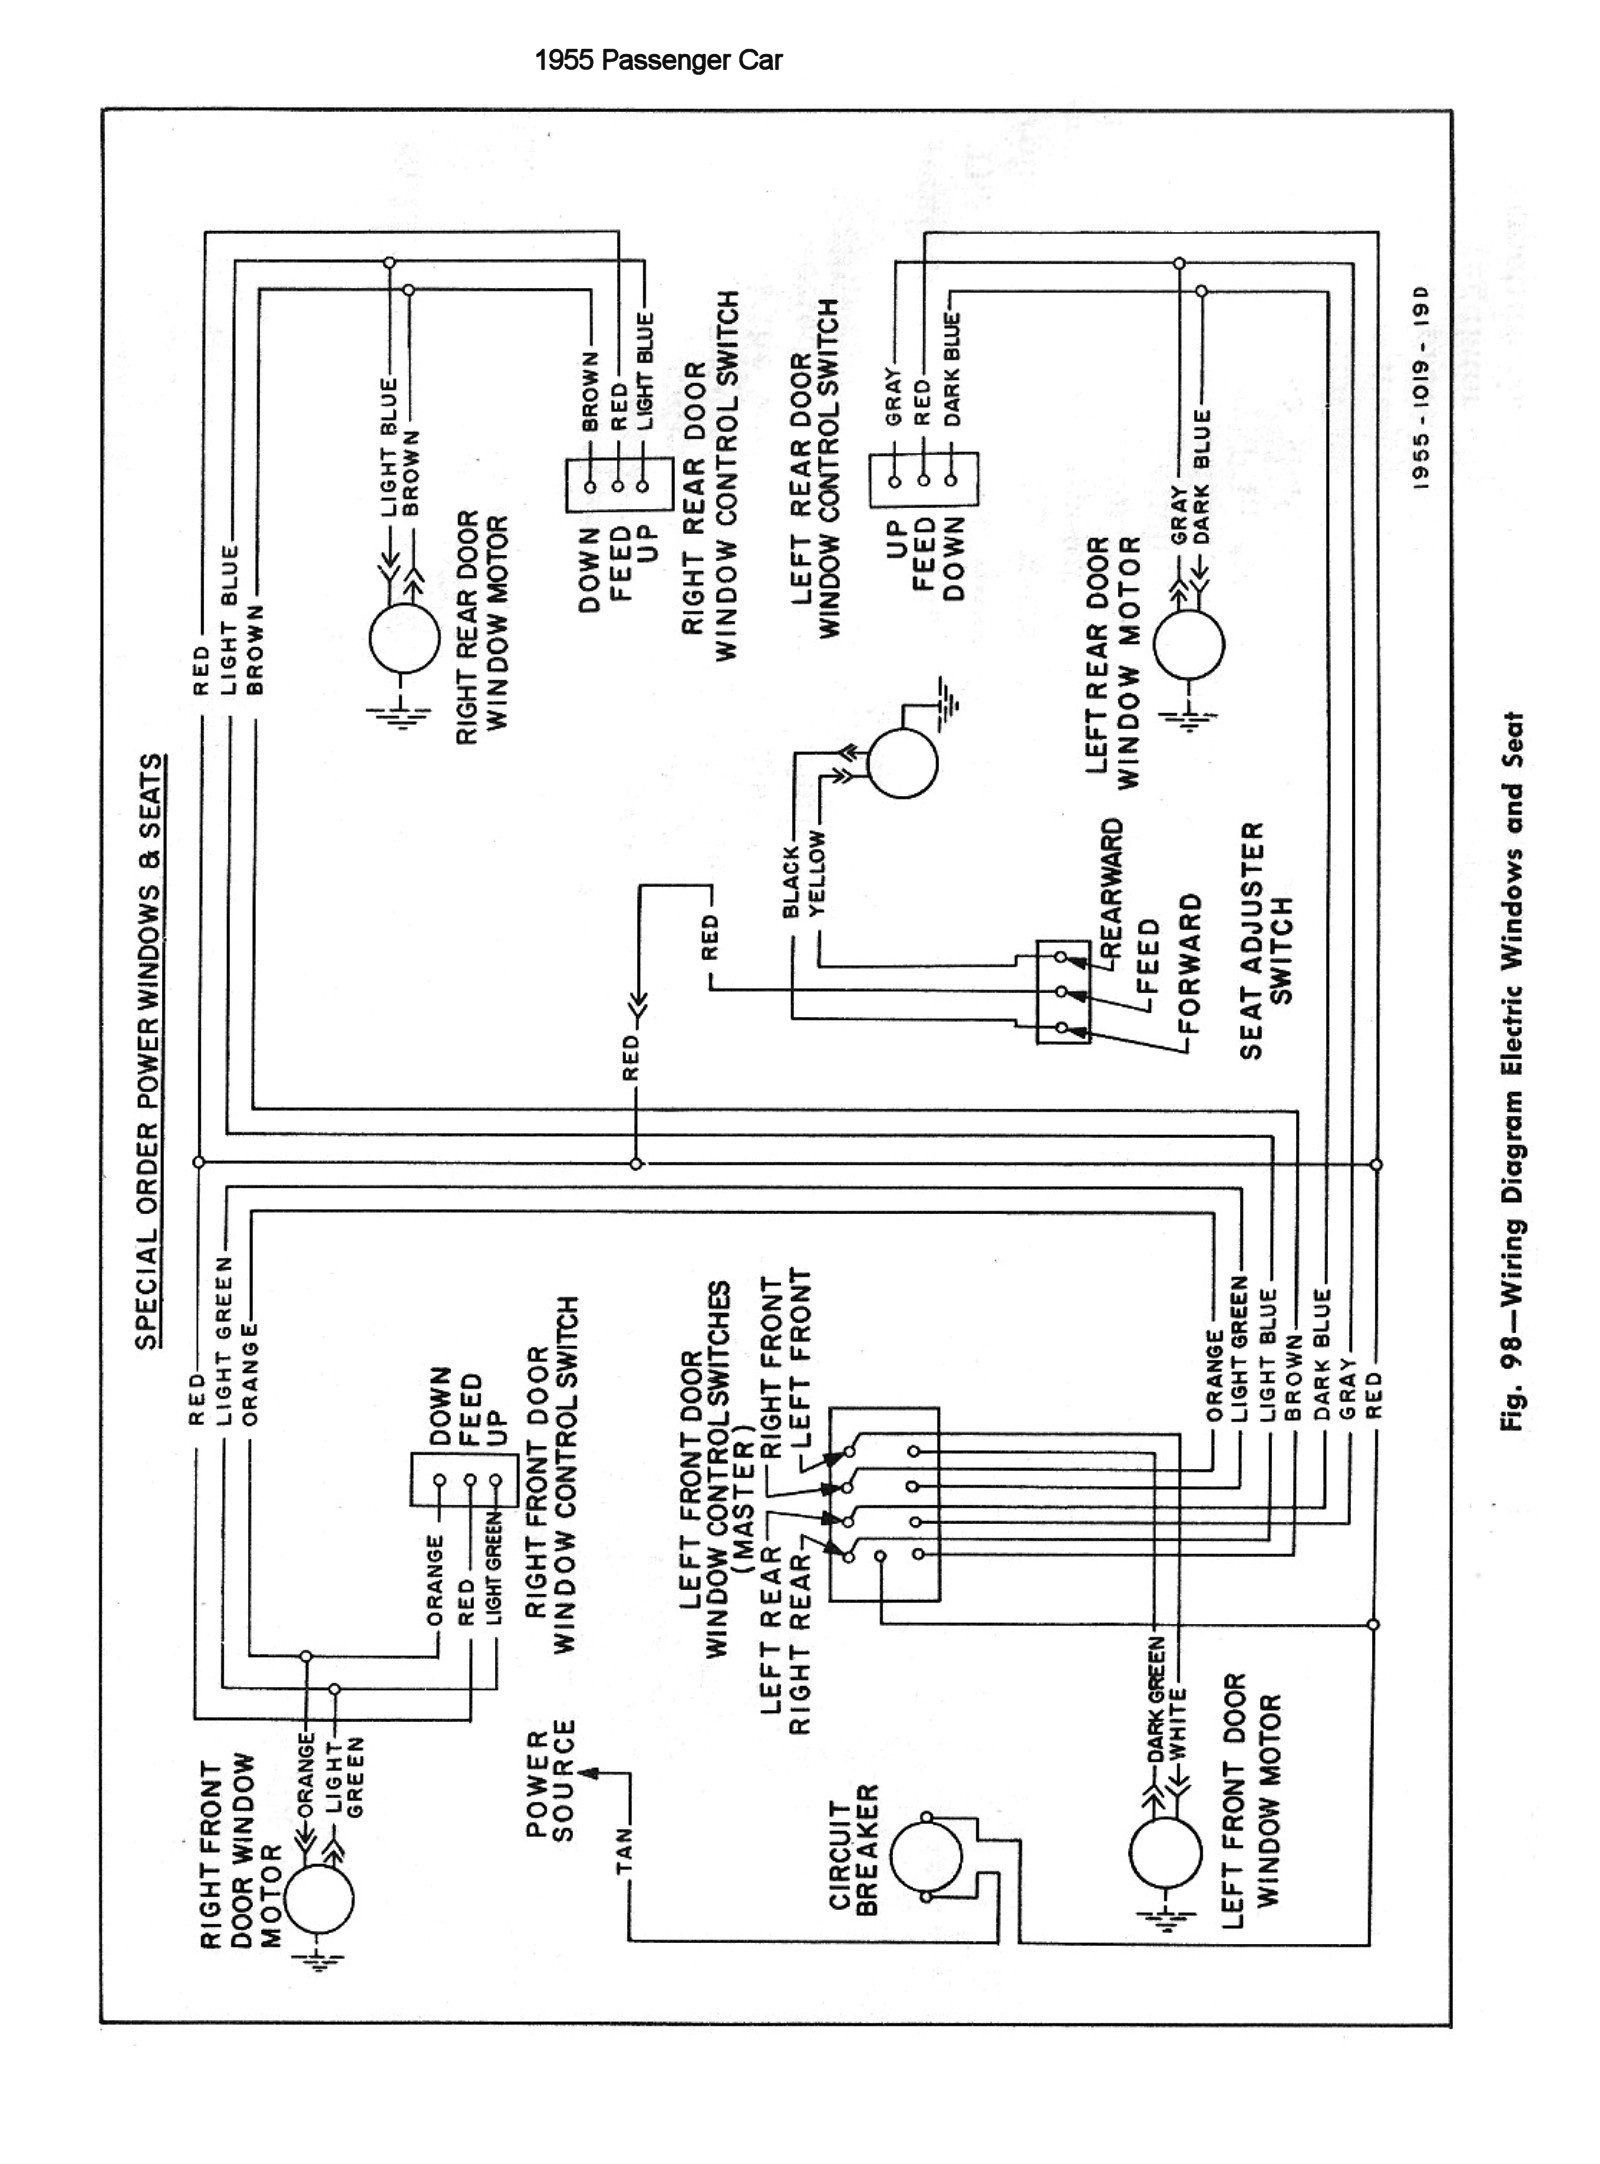 universal truck turn signal wiring diagram 1977 chevrolet truck turn signal wiring diagram 1955 chevy turn signal wiring diagram | wiringdiagram.org ...